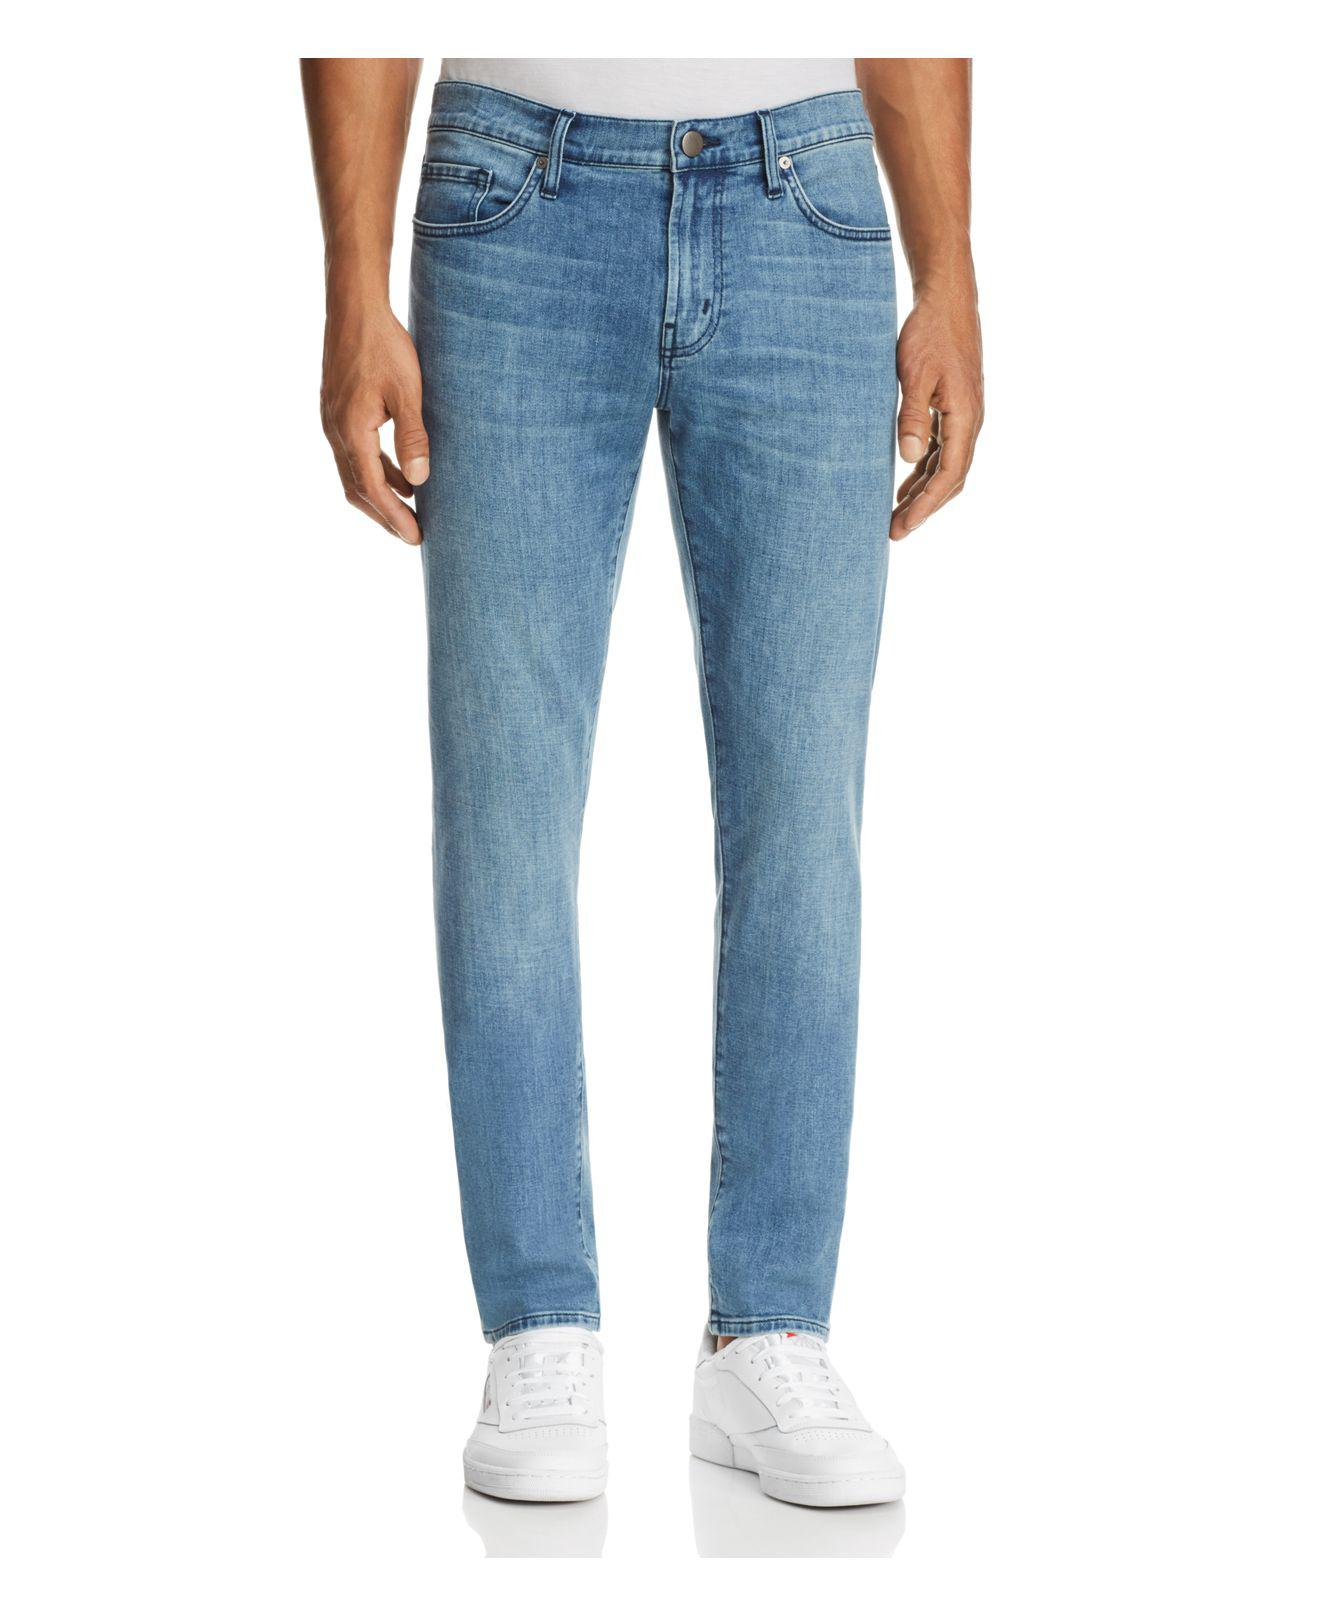 Cheap 100% Guaranteed Supply Cheap Online Mick jeans - Blue J Brand Browse For Sale dxShfte